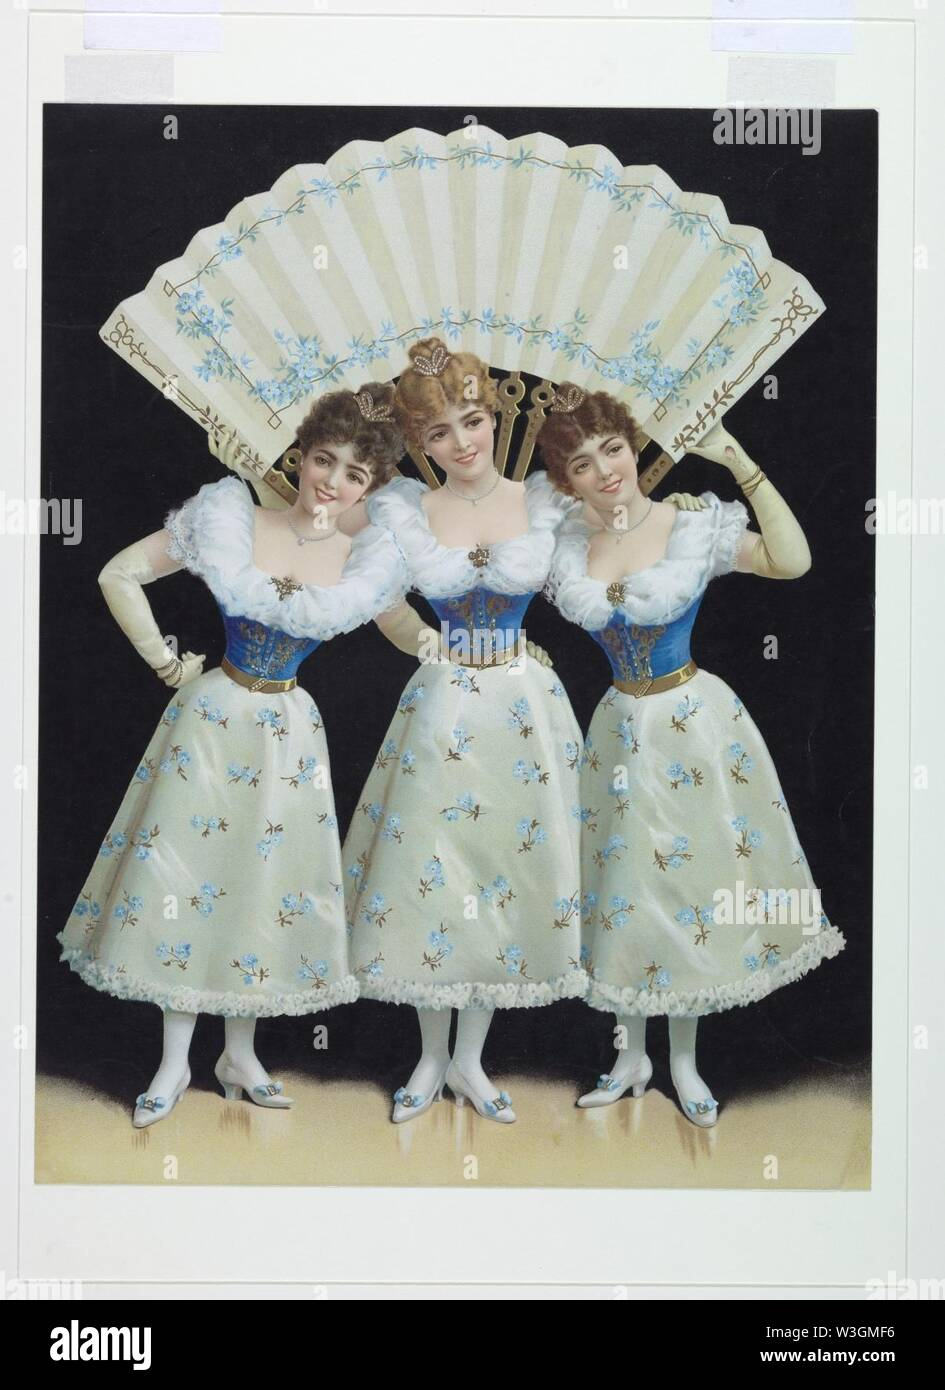 Chromolithographic Print, Advertising poster, ca. 1898 - Stock Image